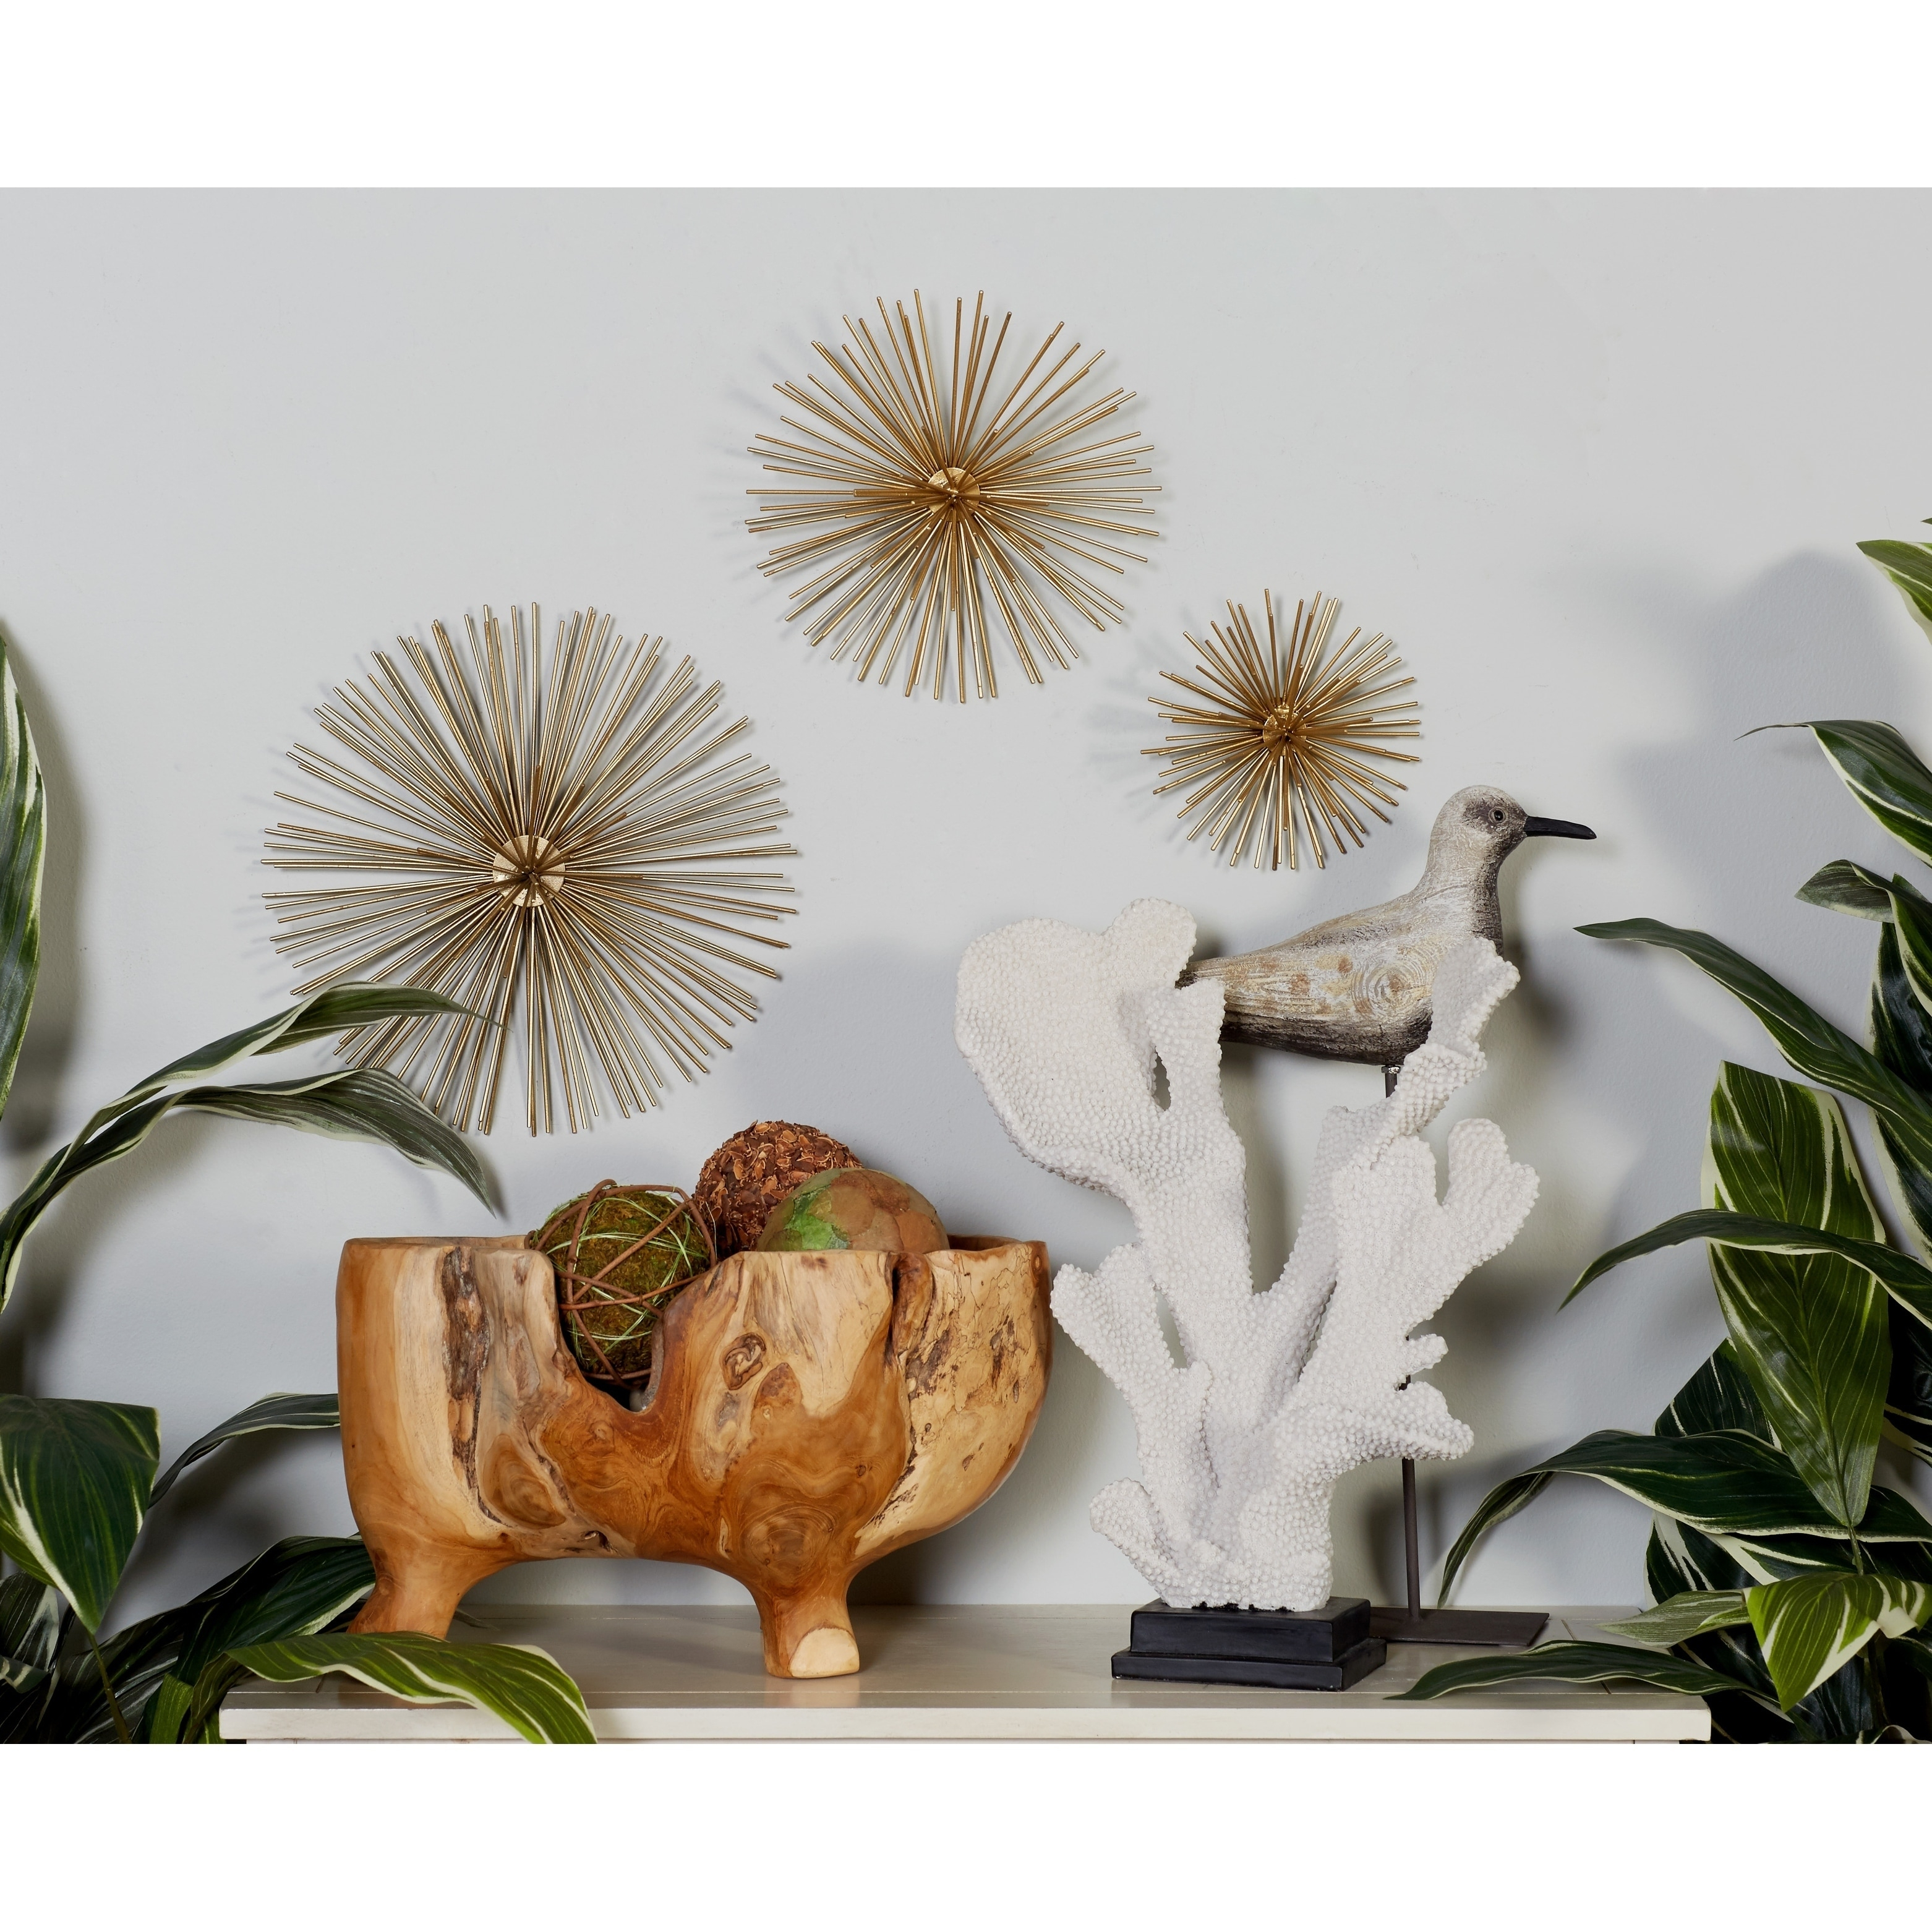 Decmode Metallic Gold Starburst Modern Metal Wall Décor | Set Of 3 pertaining to Set of 3 Contemporary 6, 9, and 11 Inch Gold Tin Starburst Sculptures (Image 11 of 30)